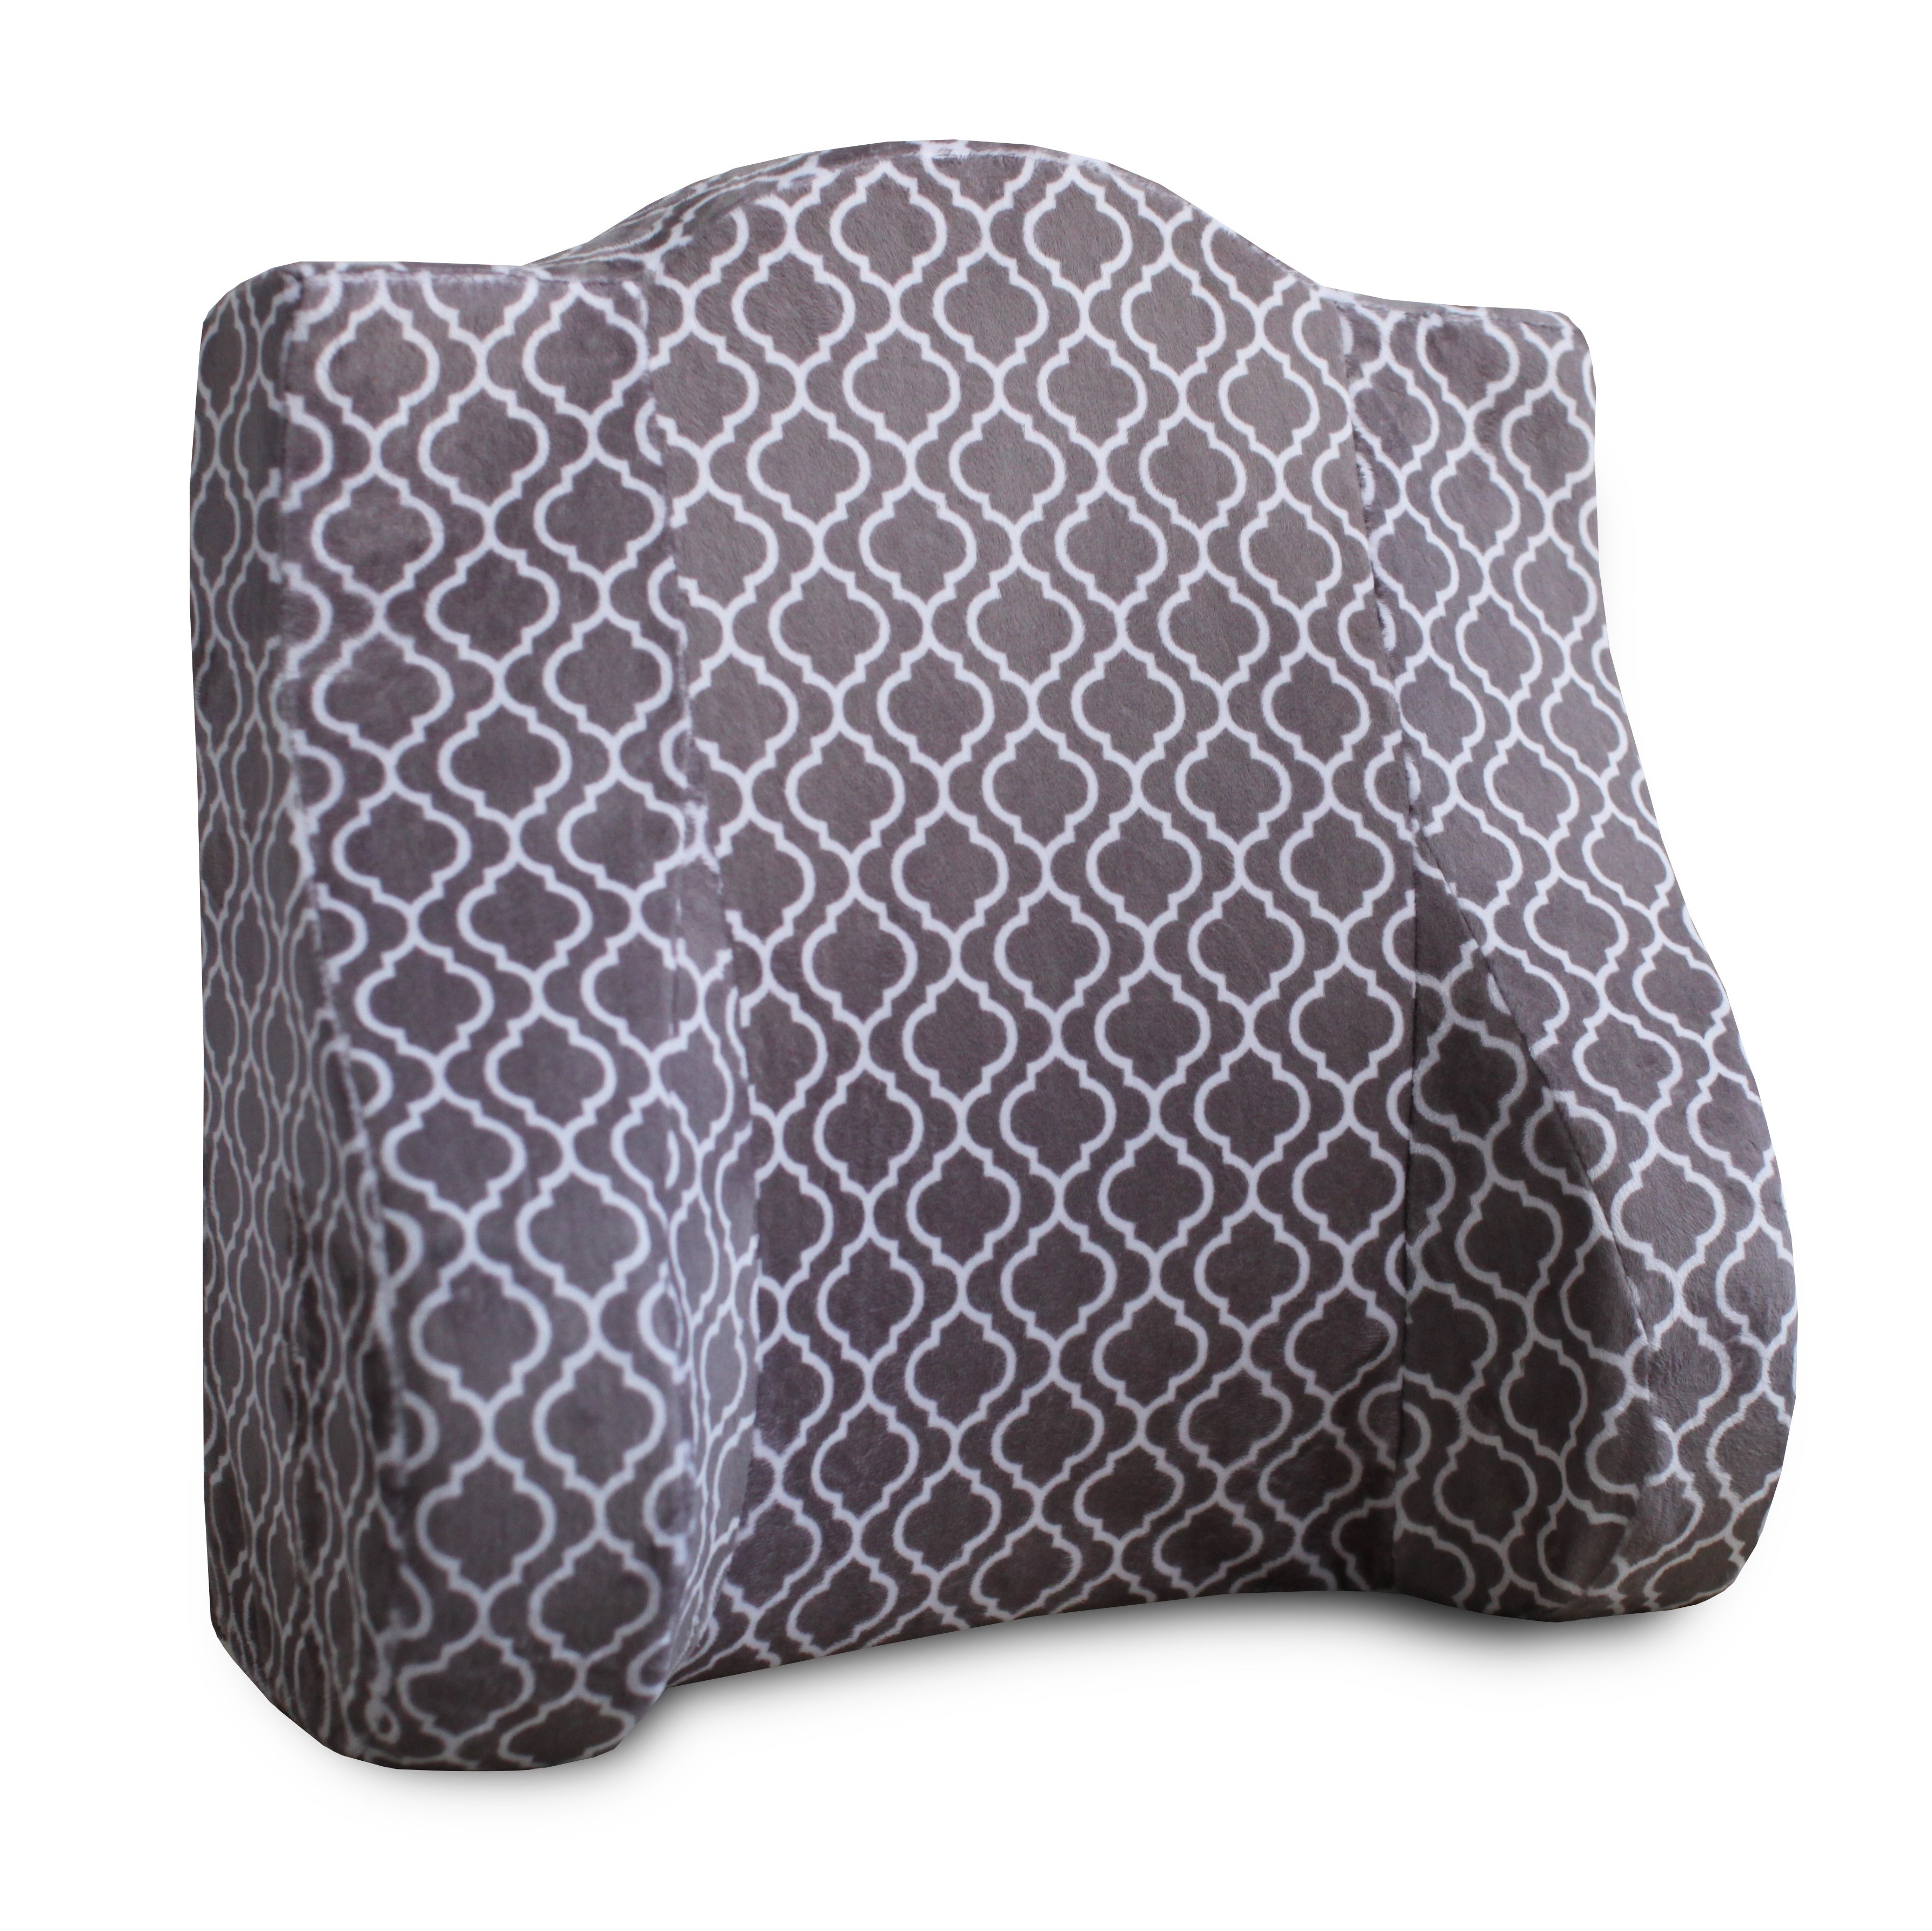 Back Buddy All-In-One Support Pillow for Pregnancy, Feeding, and Postpartum Ellison (Charcoal Trellis) by Supplier Generic